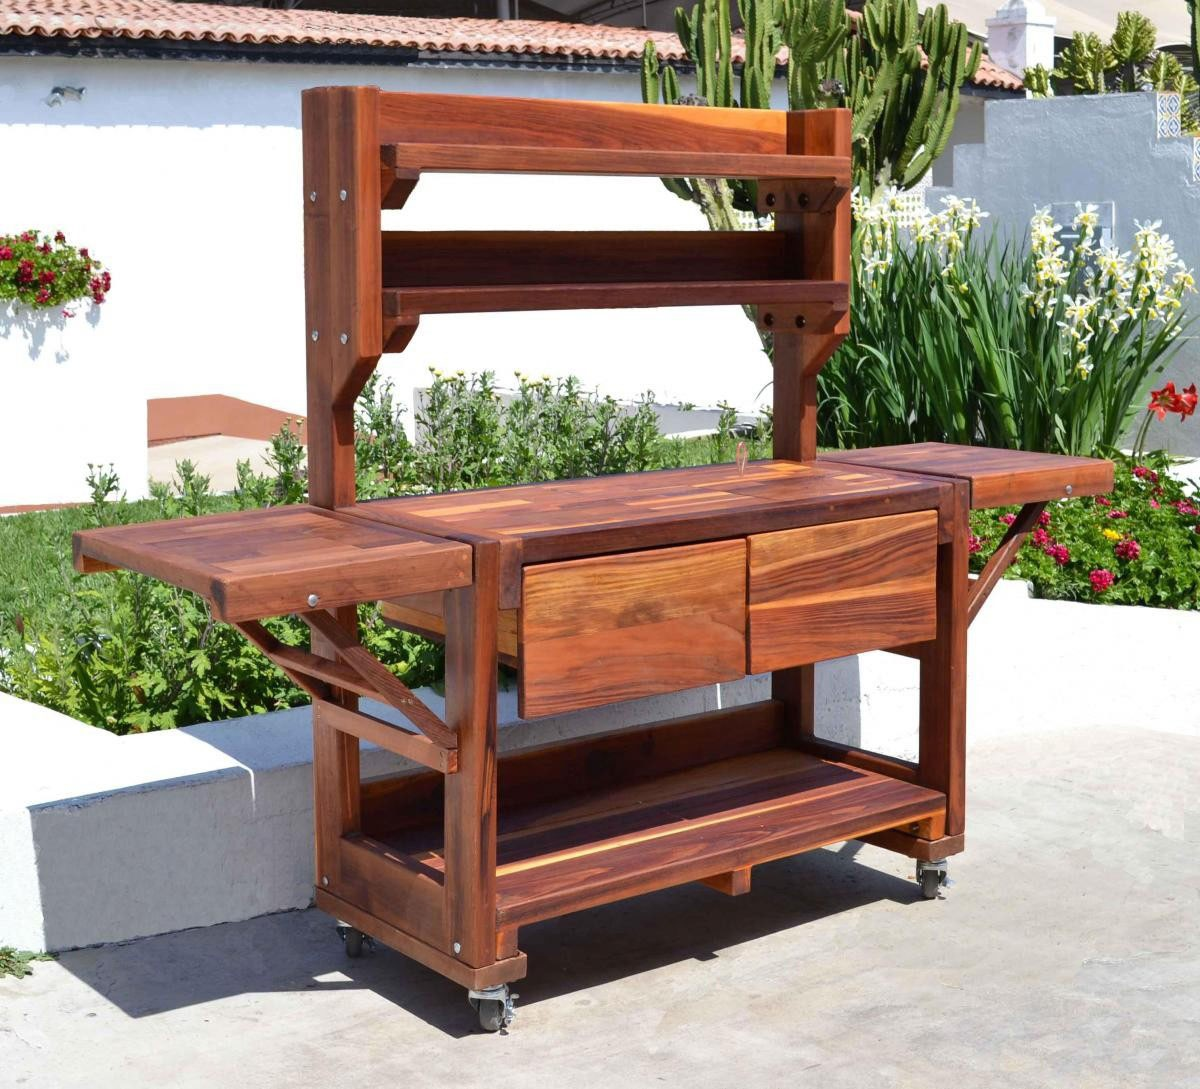 Eli 39 s potting benches built to last decades forever redwood - Potting bench with storage ...